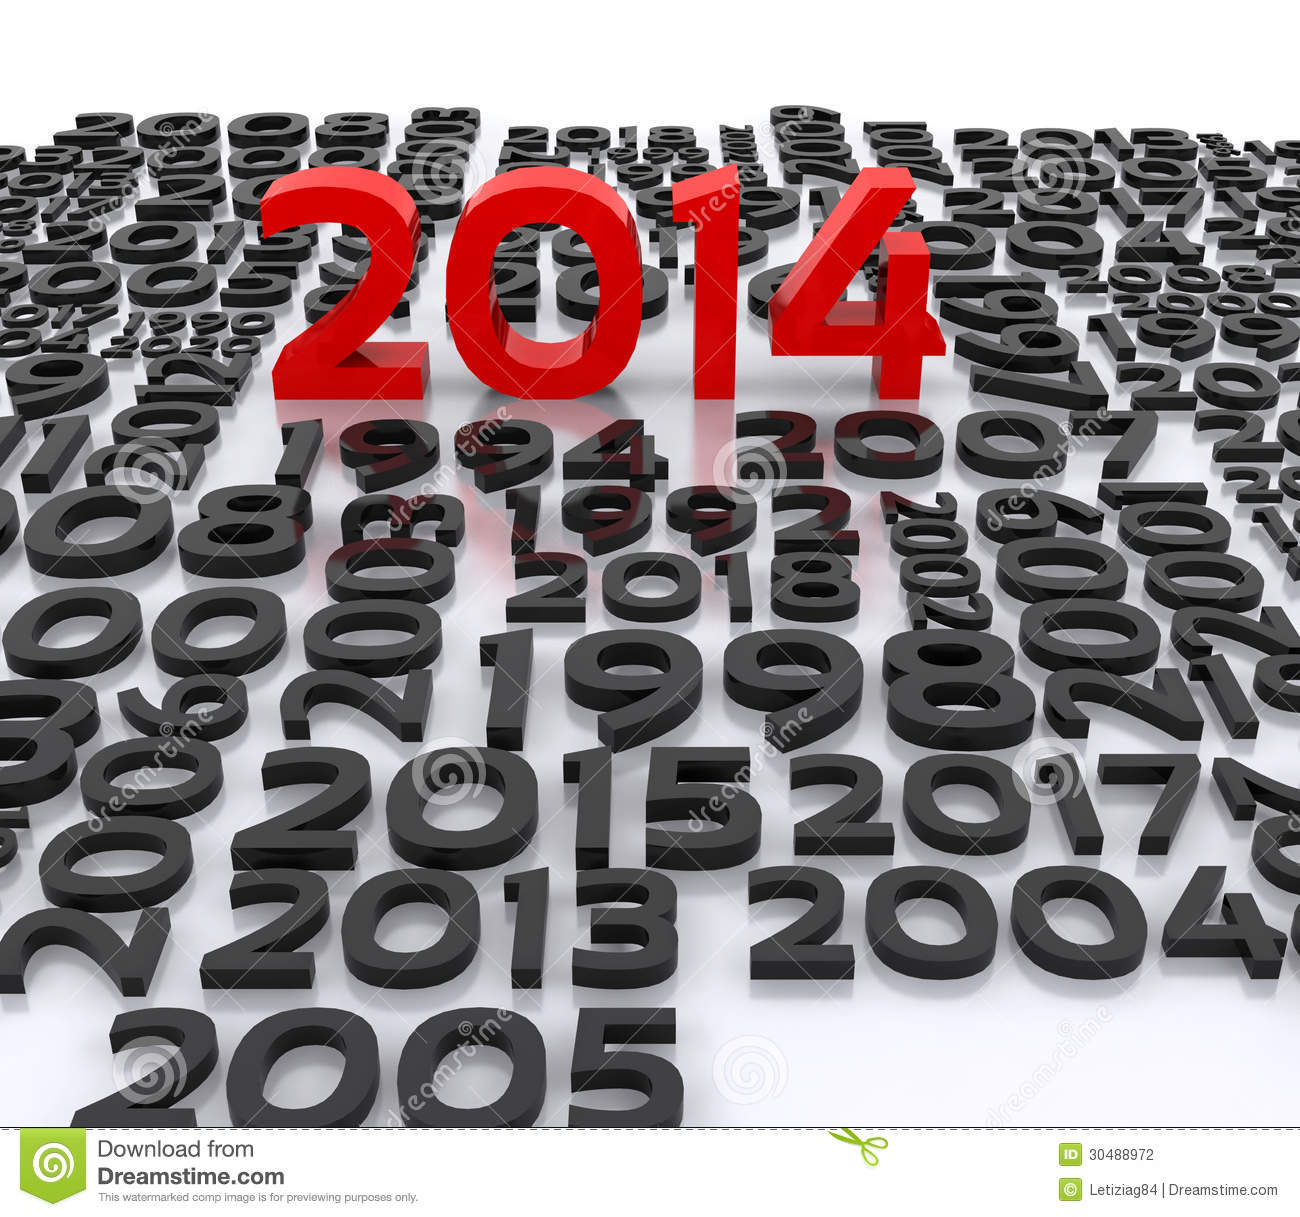 New 2014 Stock Illustrations  Royalty Free  GoGraph